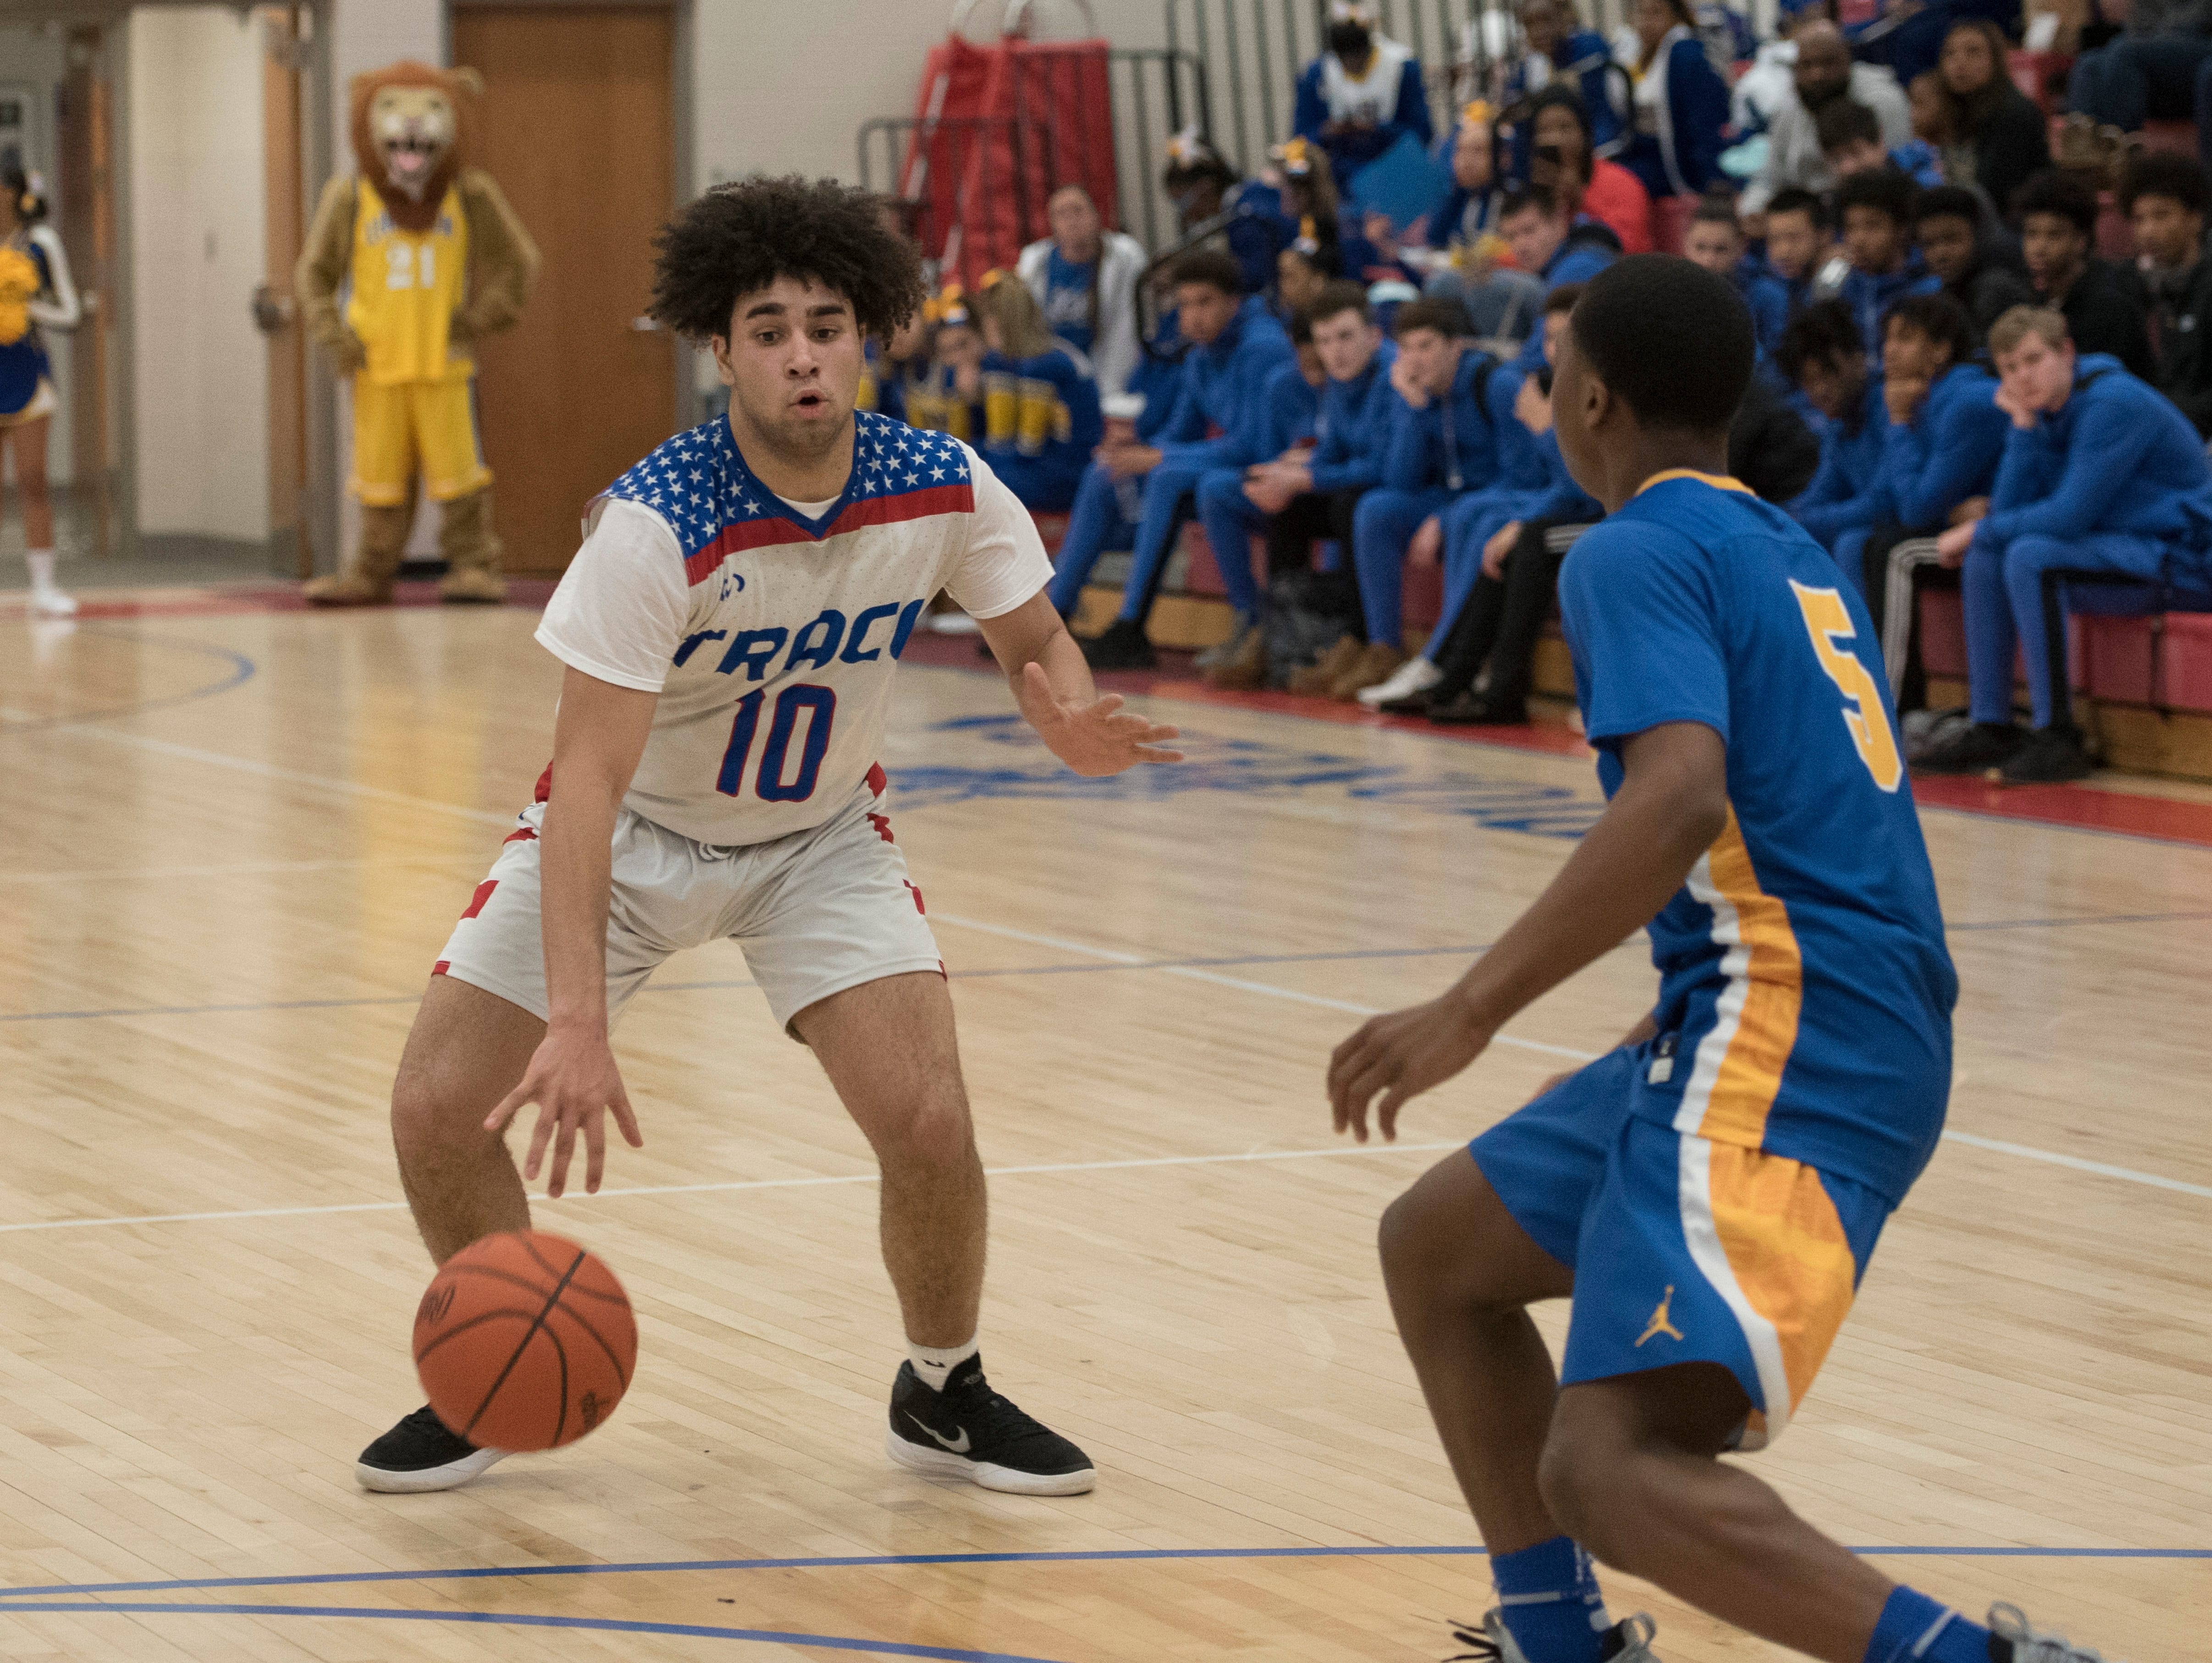 Zane Trace fell to Gahanna Lincoln 63-46 Saturday night at Zane Trace High School. The Pioneers are now 14-4 for the season and